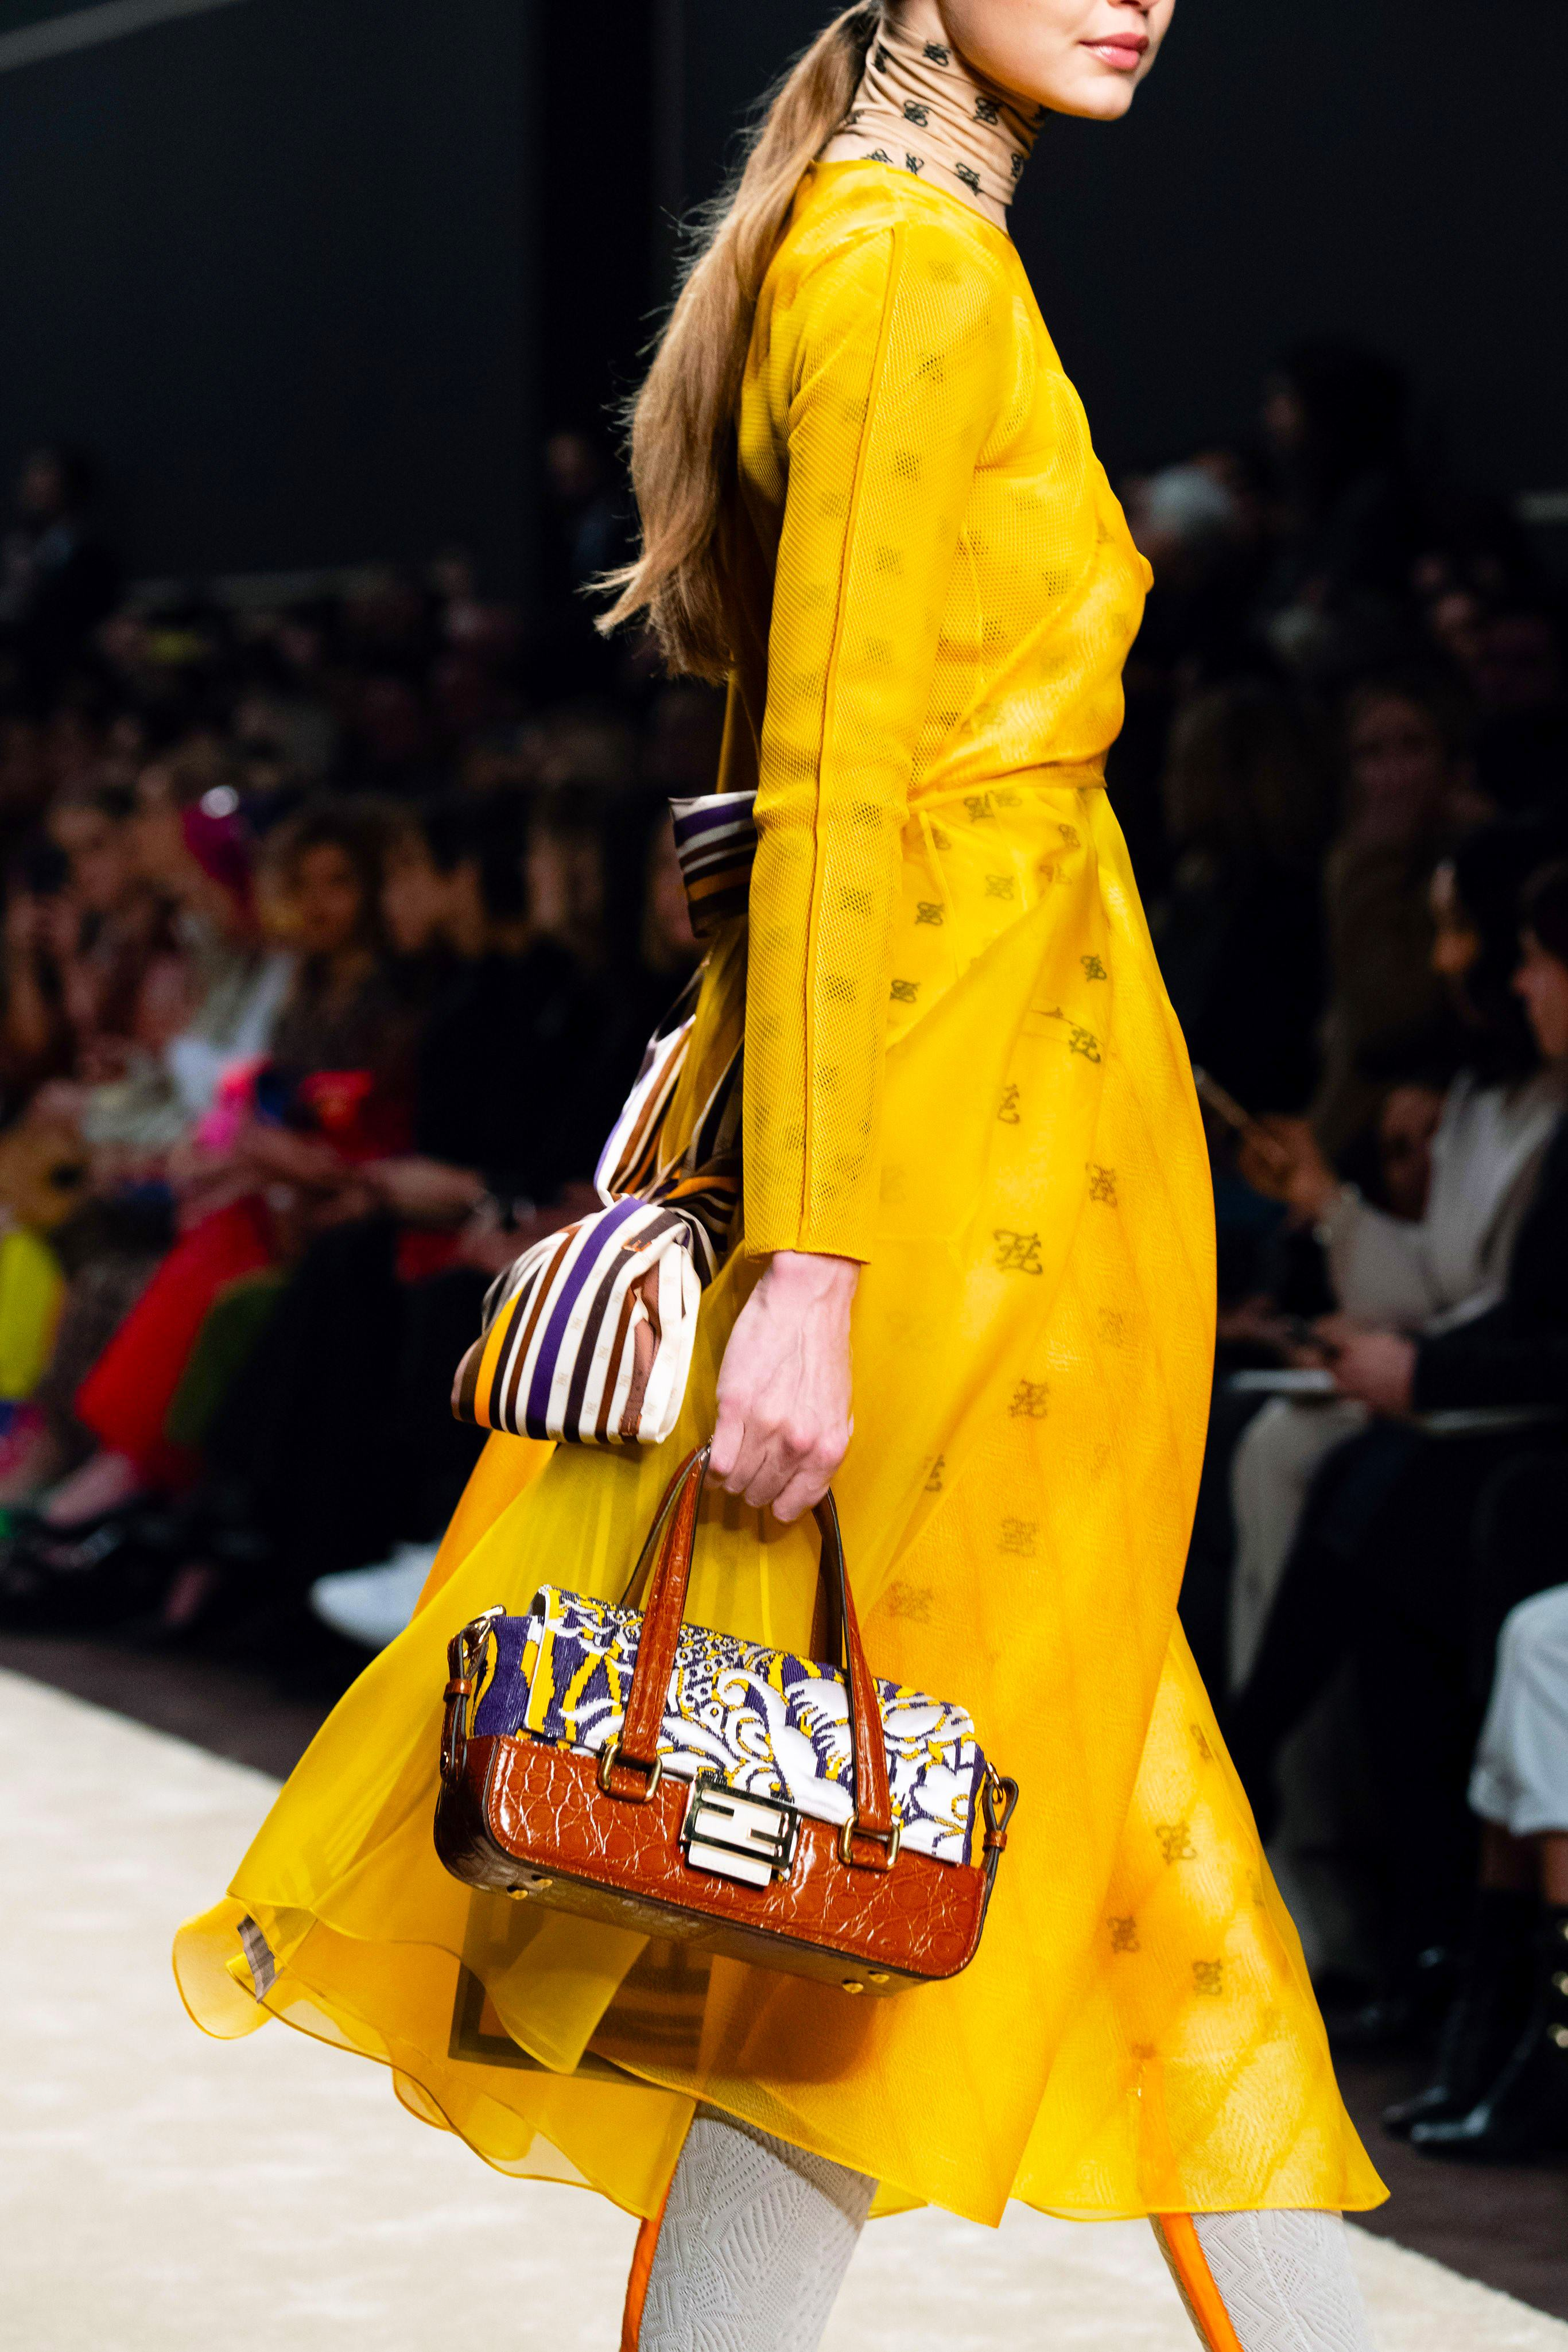 Printed Fendi Baguette Bag from the Fall 2019 Runway Bag Collection